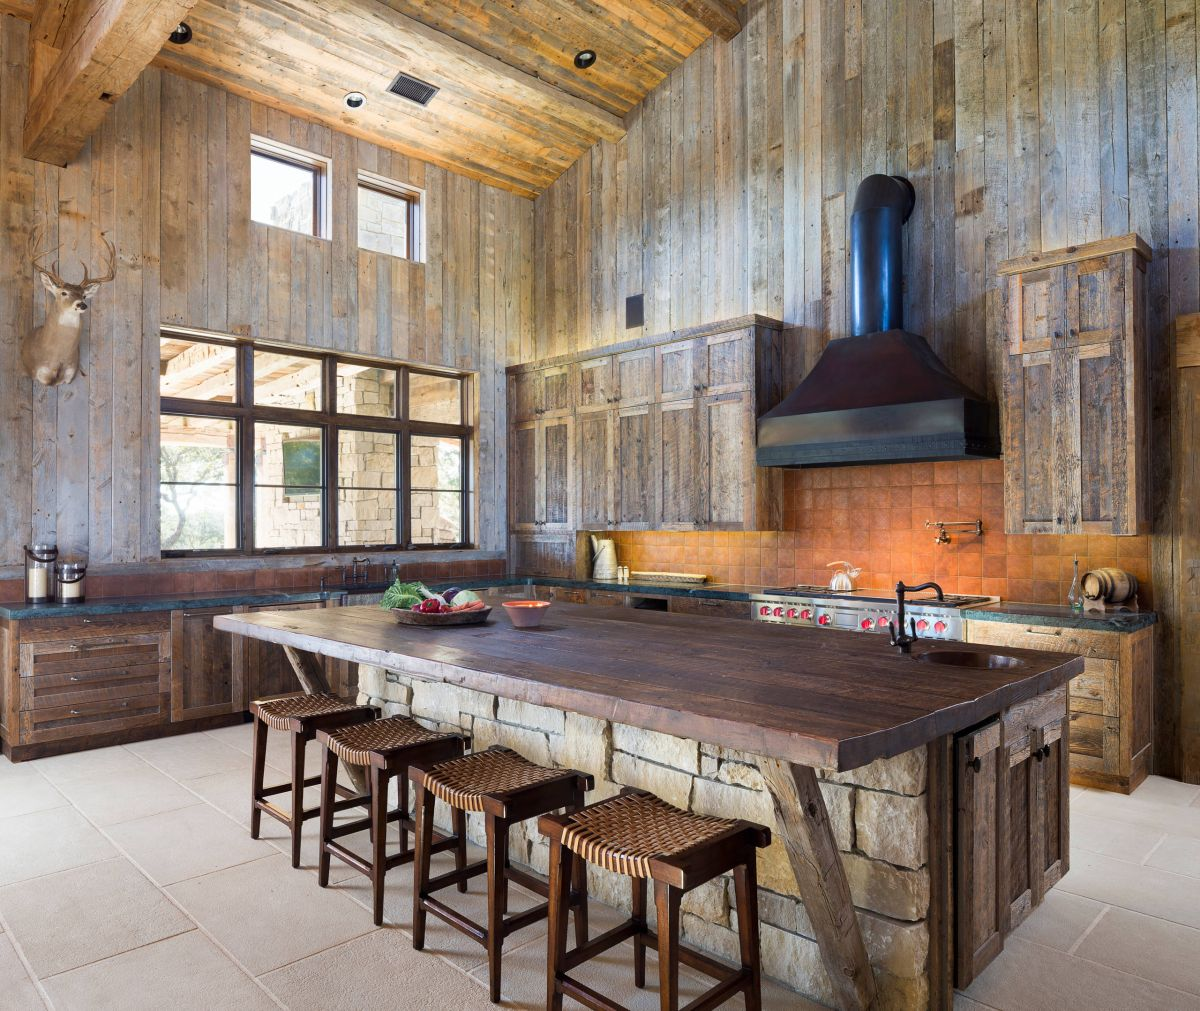 Kitchen Island from Stones